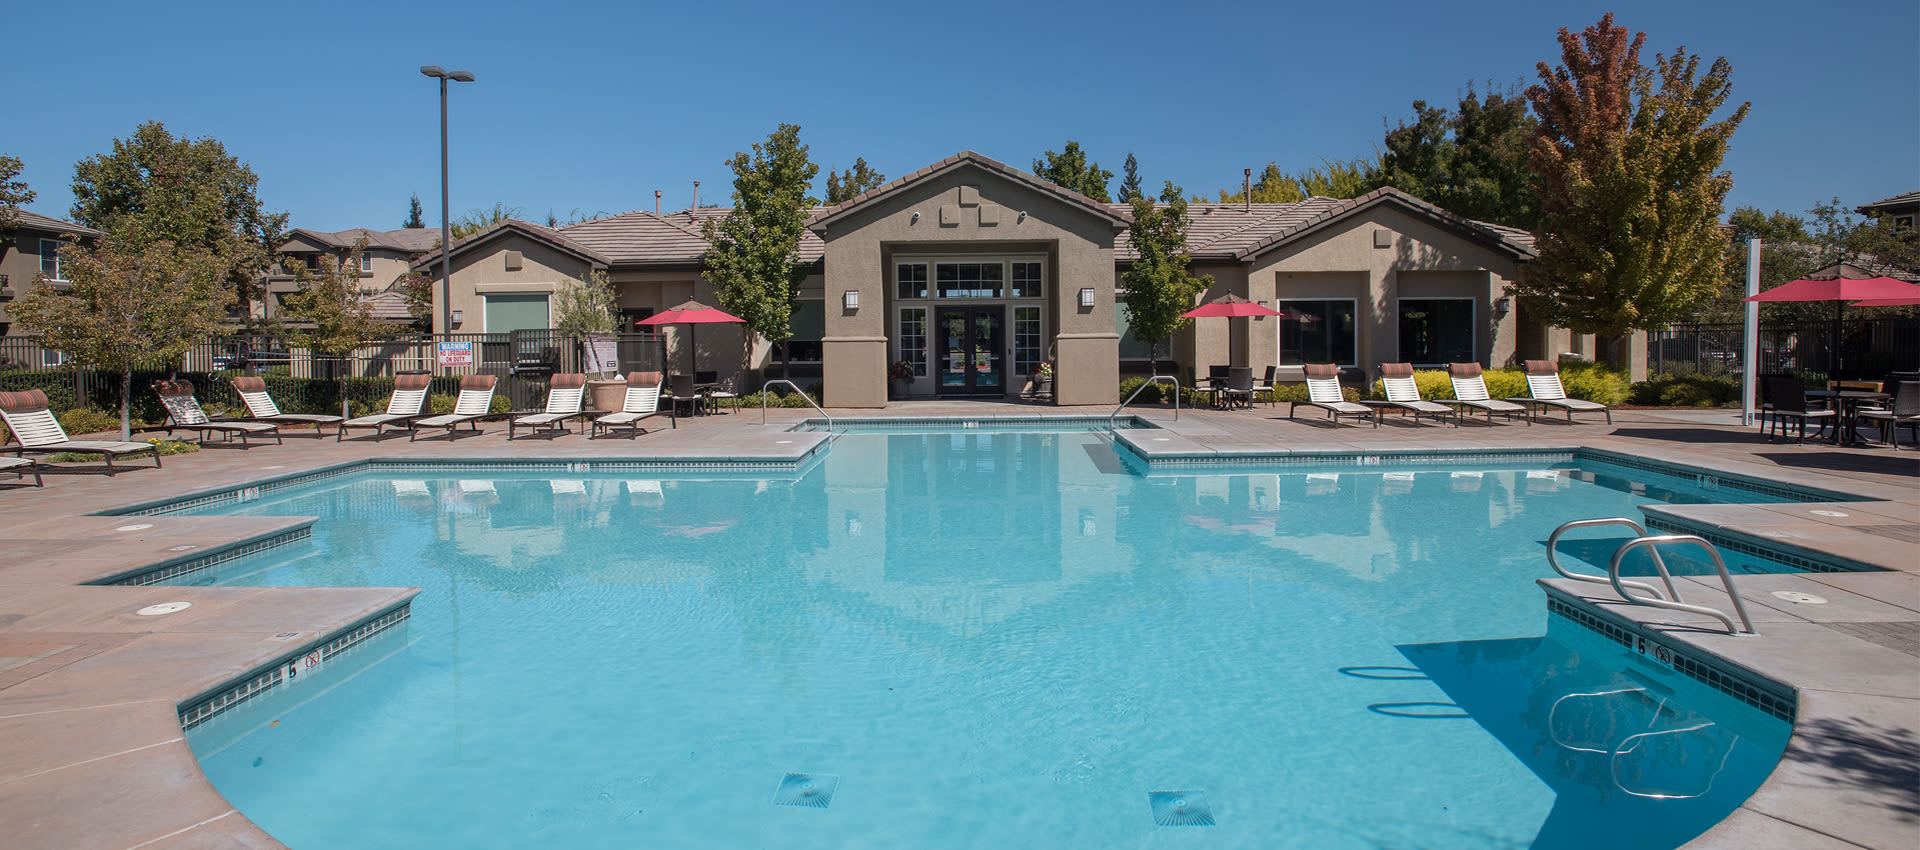 Expansive Pool Deck and Spa at The Artisan Apartment Homes in Sacramento, California